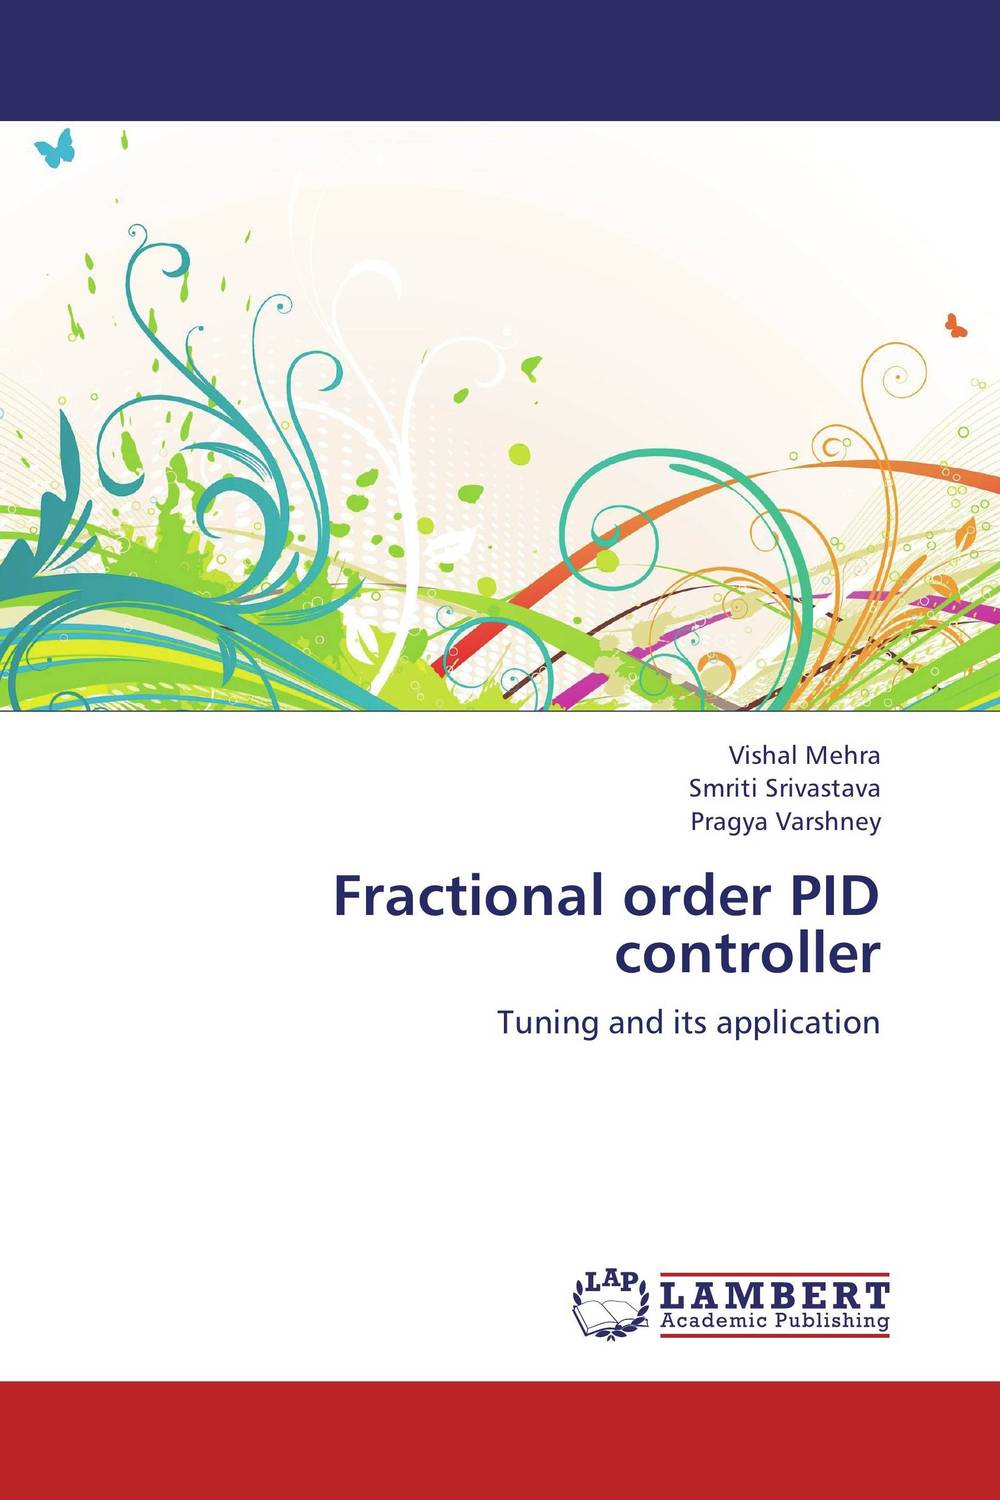 Fractional order PID controller rakesh kumar and vineet shibe comparision conventional pid controller